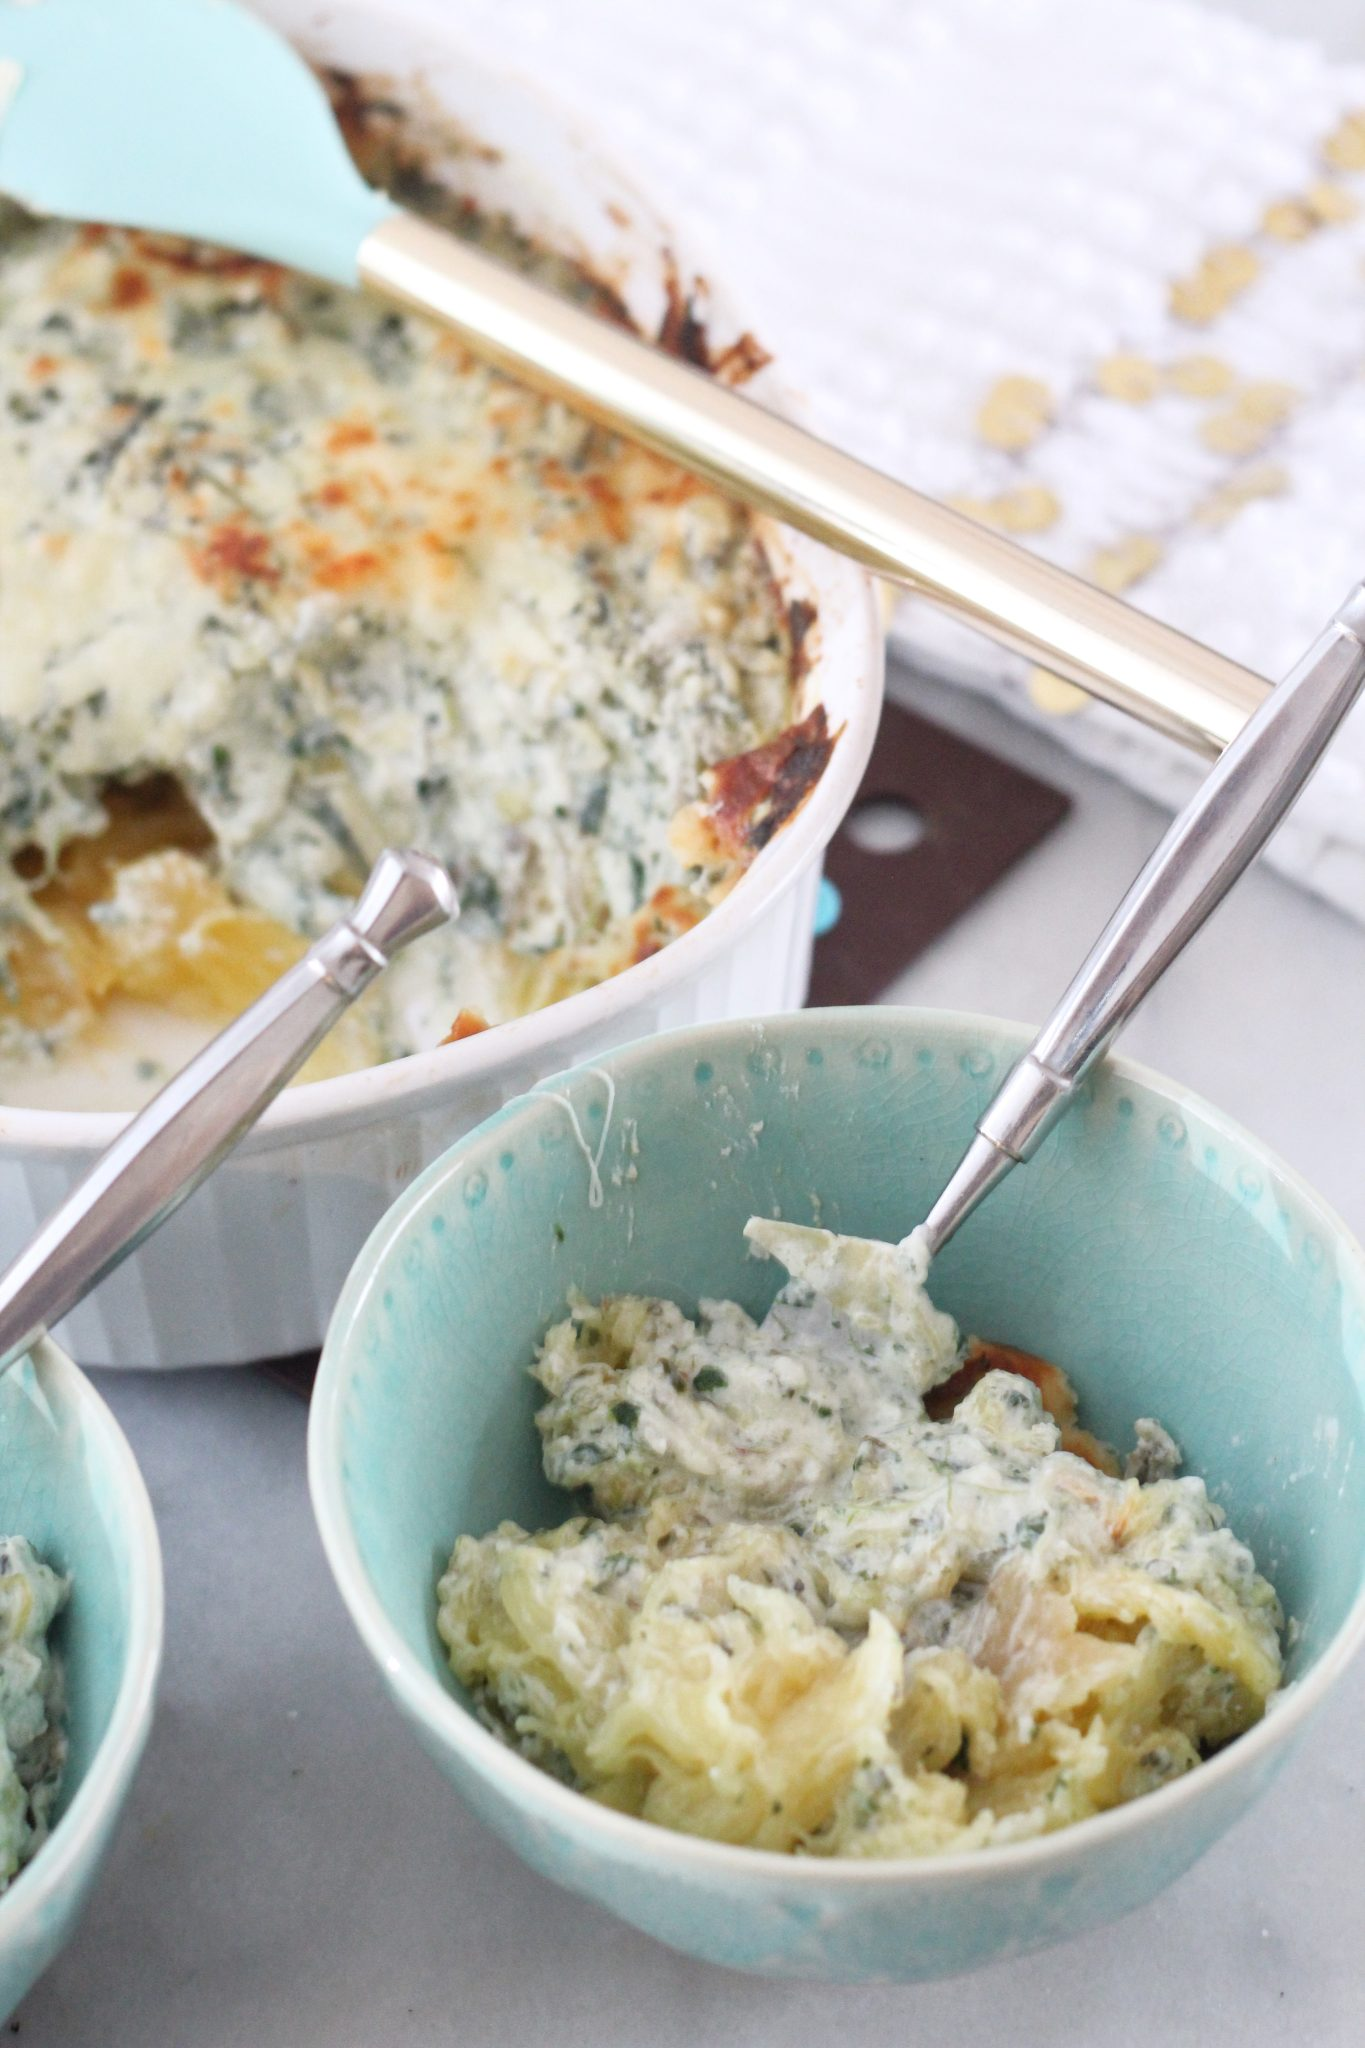 This recipe for Creamy Spinach Artichoke Spaghetti Squash Casserole tastes just like your favorite dip, but melted over healthy spaghetti squash! It's low carb and keto! #lowcarbdelish #lowcarbdinner #lowcarbcasserole #ketodinner #ketodinnerrecipes #lowcarbrecipes #spaghettisquashrecipes